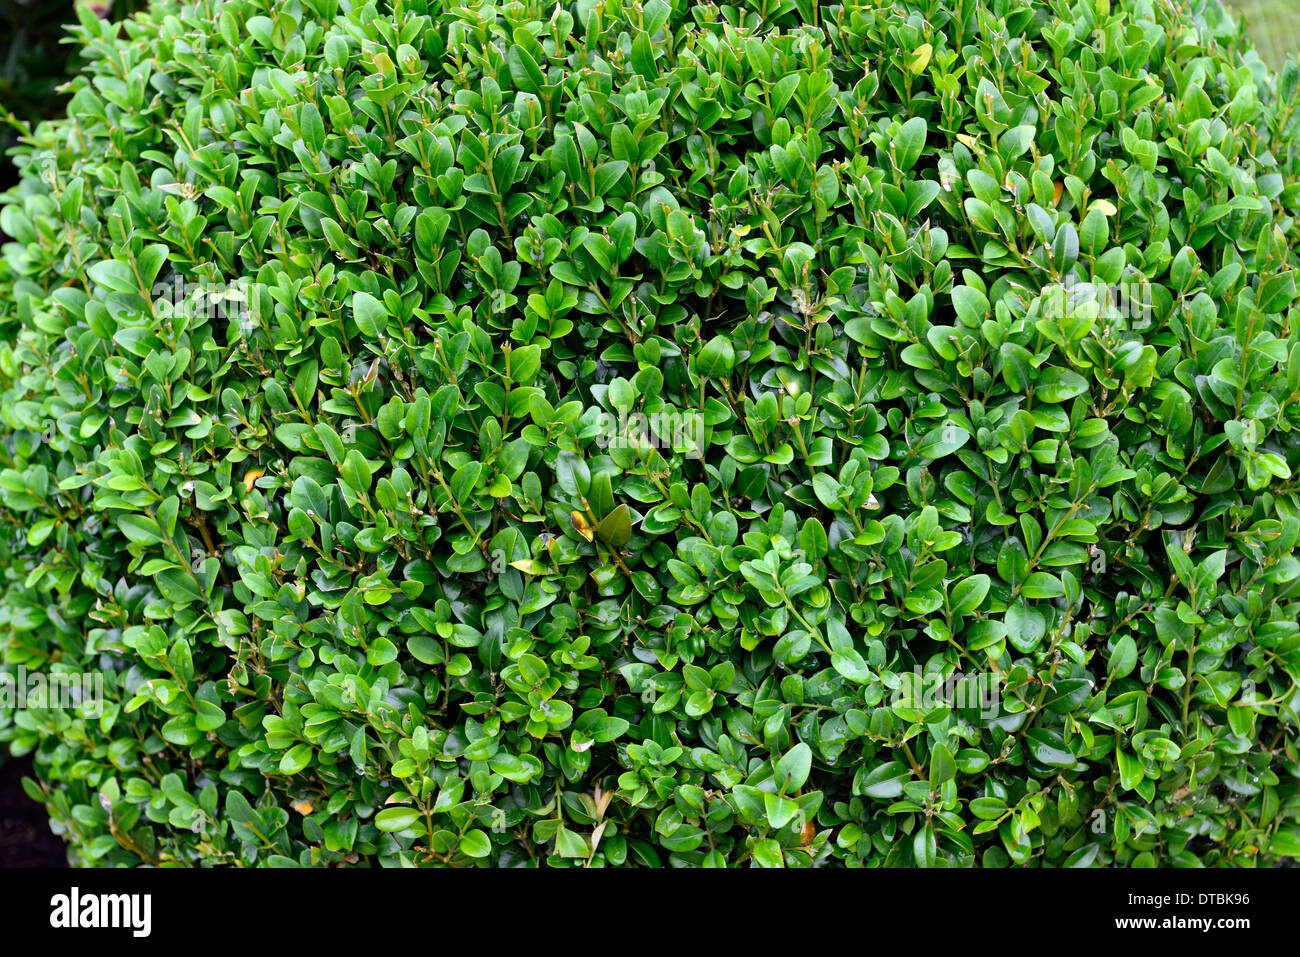 Buxus Sempervirens Box Hedge Plant Round Ball Bush Shape Shapes Topiary Garden  Gardening Shrub Shrubs Evergreen